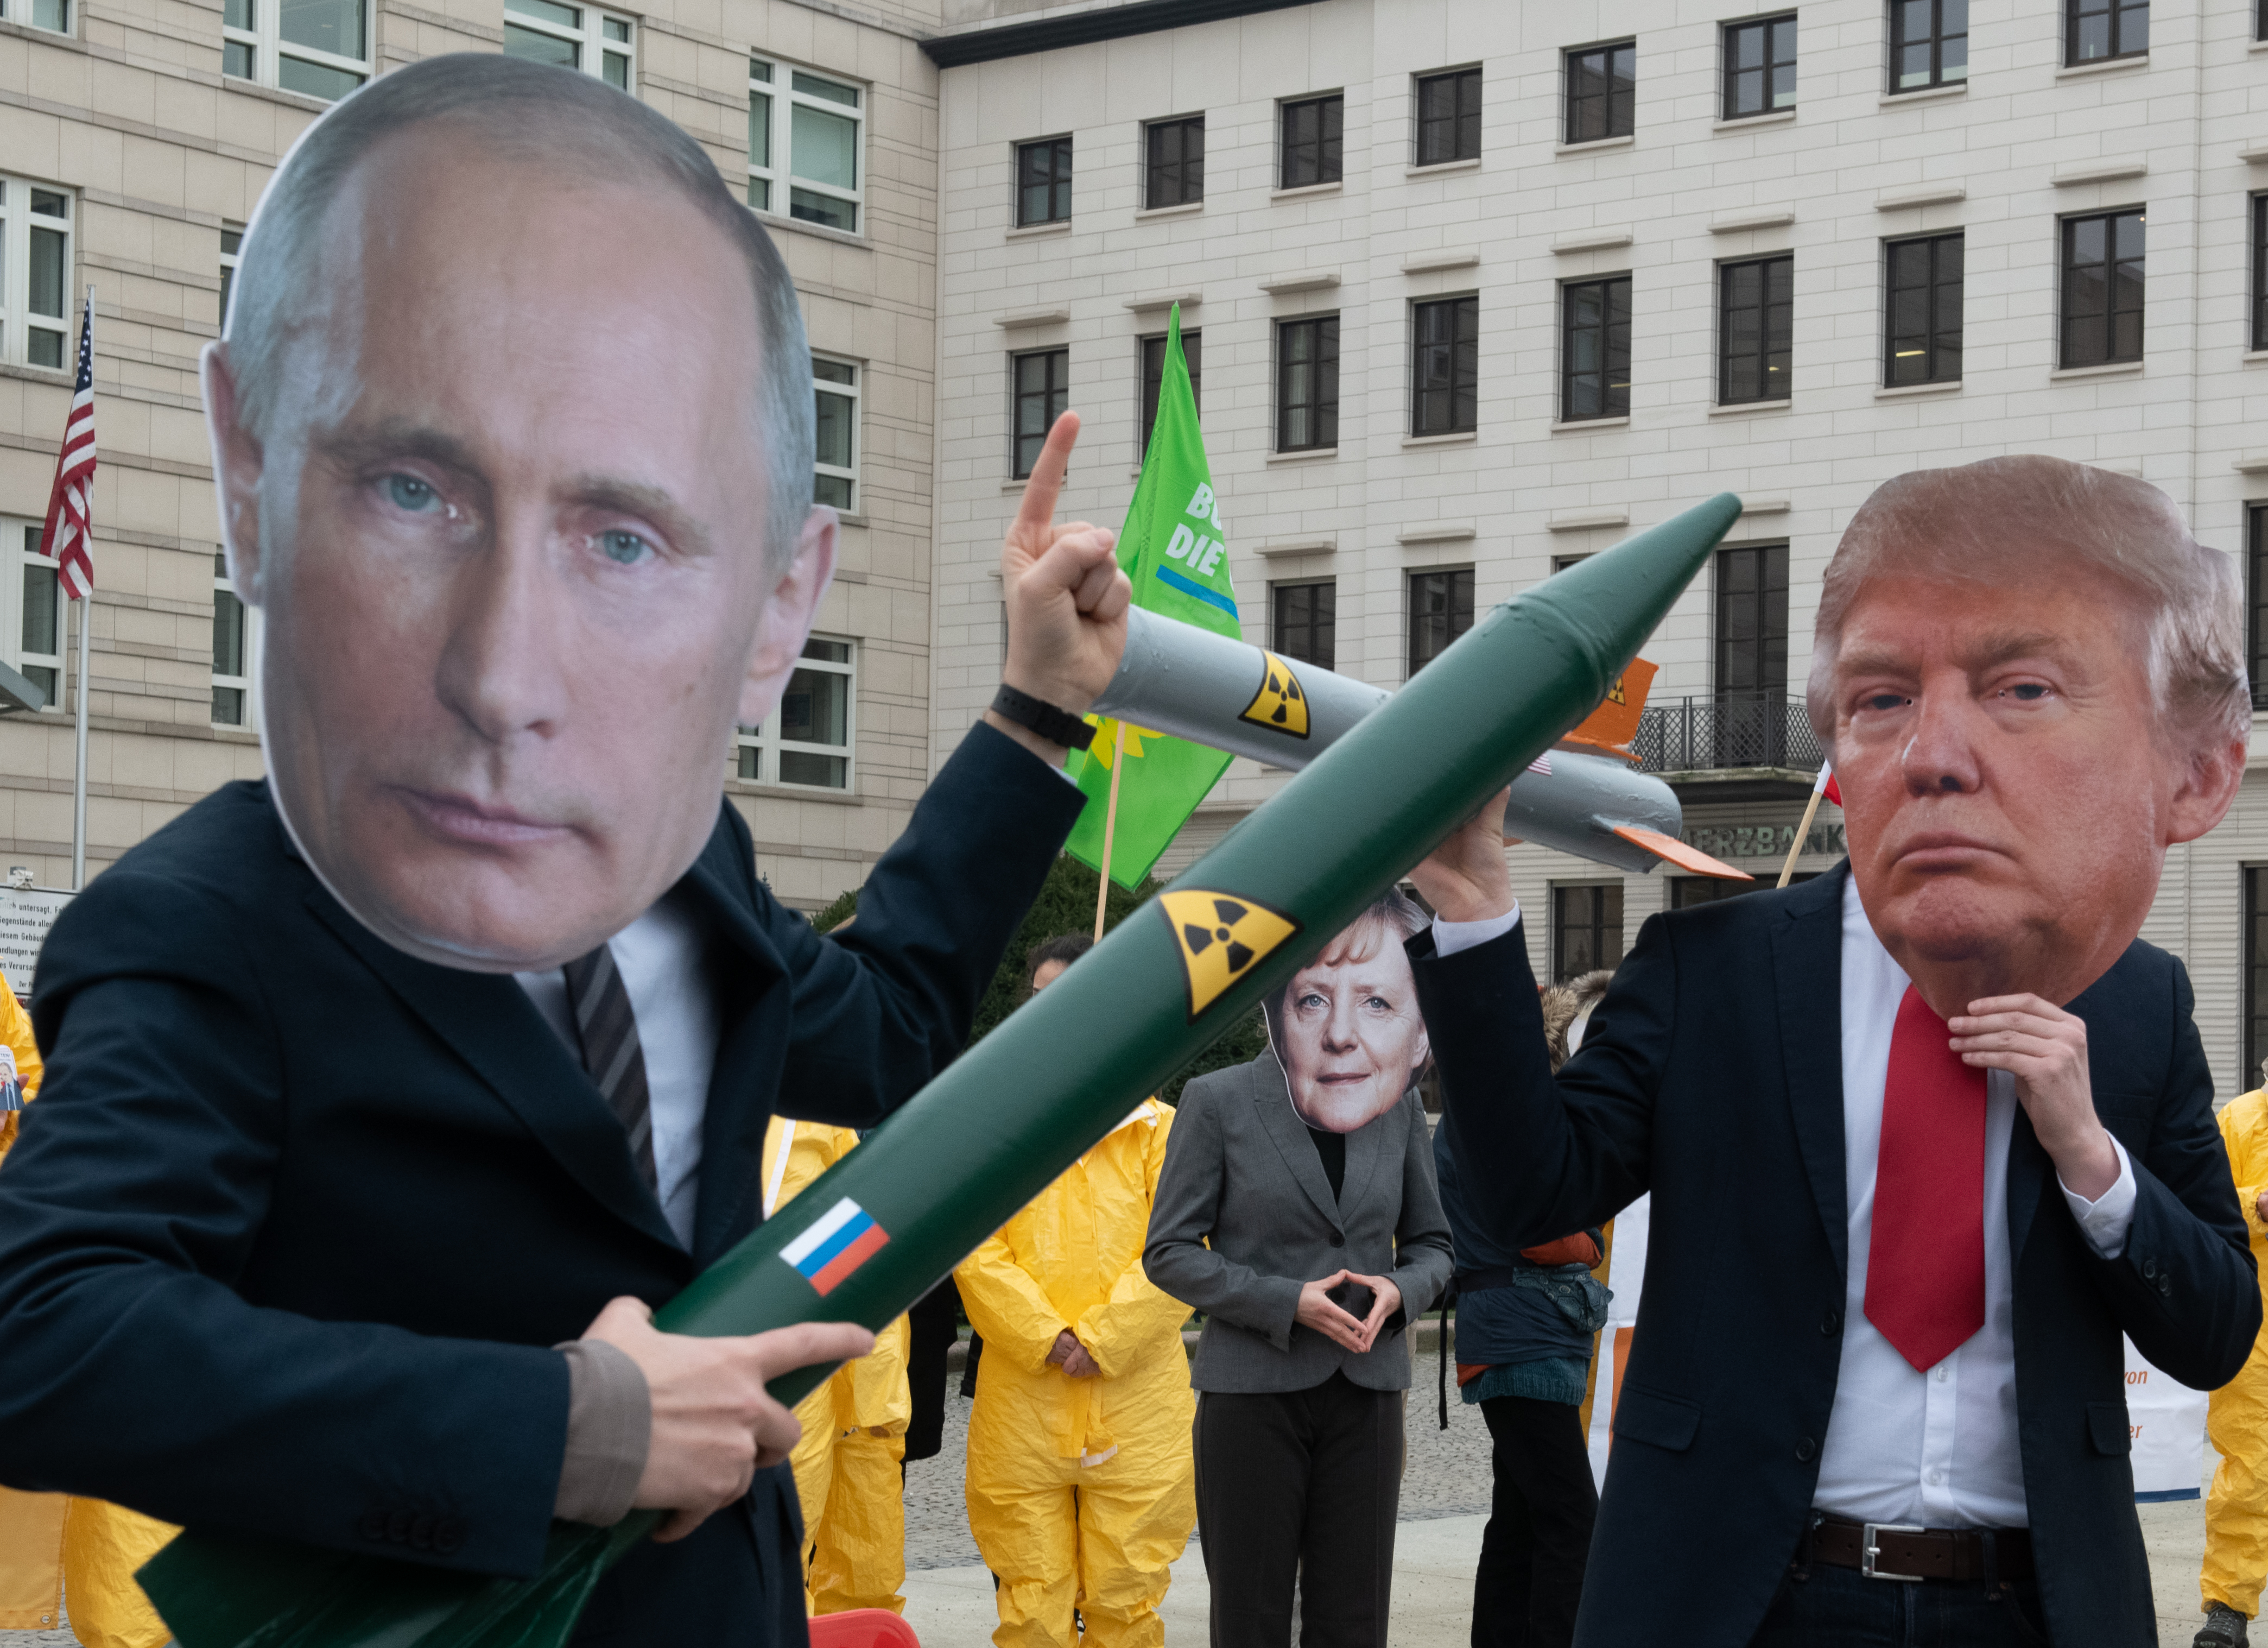 Protest against the dissolution of the INF Treaty